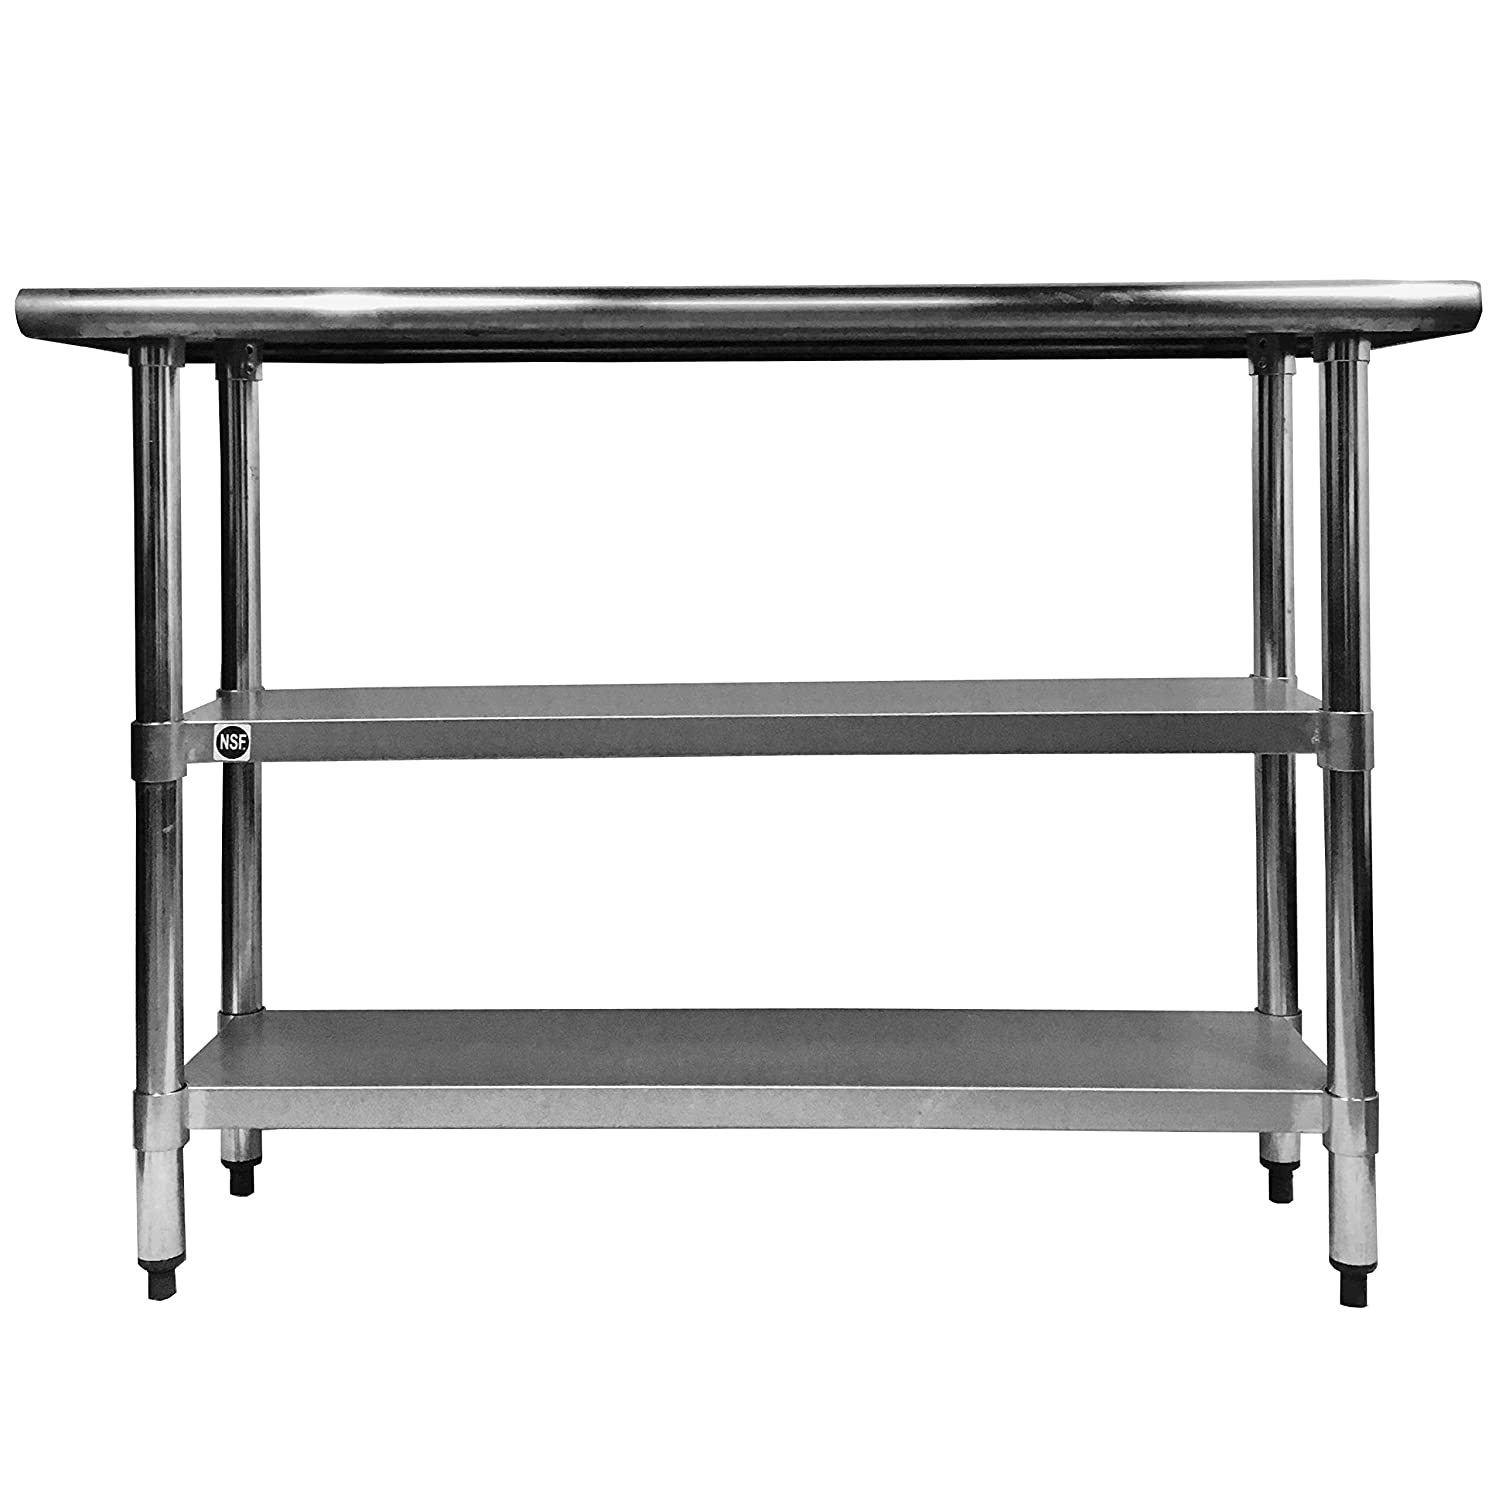 Stainless Steel Prep Work Table 18 x 48 with 2 undershelves NSF - Heavy Duty